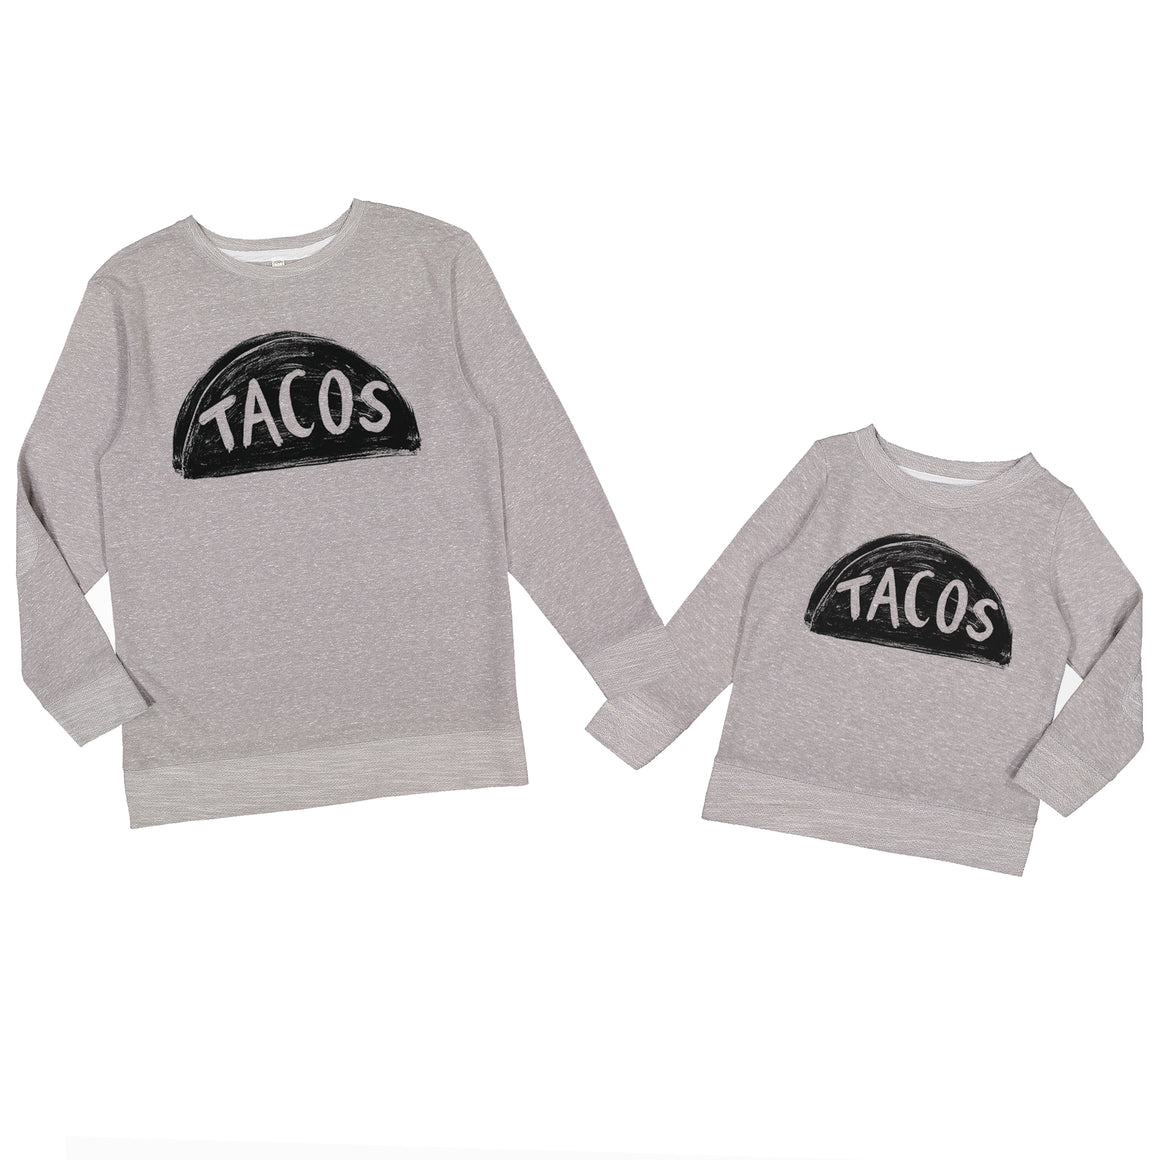 Mommy and Me Taco Tuesday Sweater Set